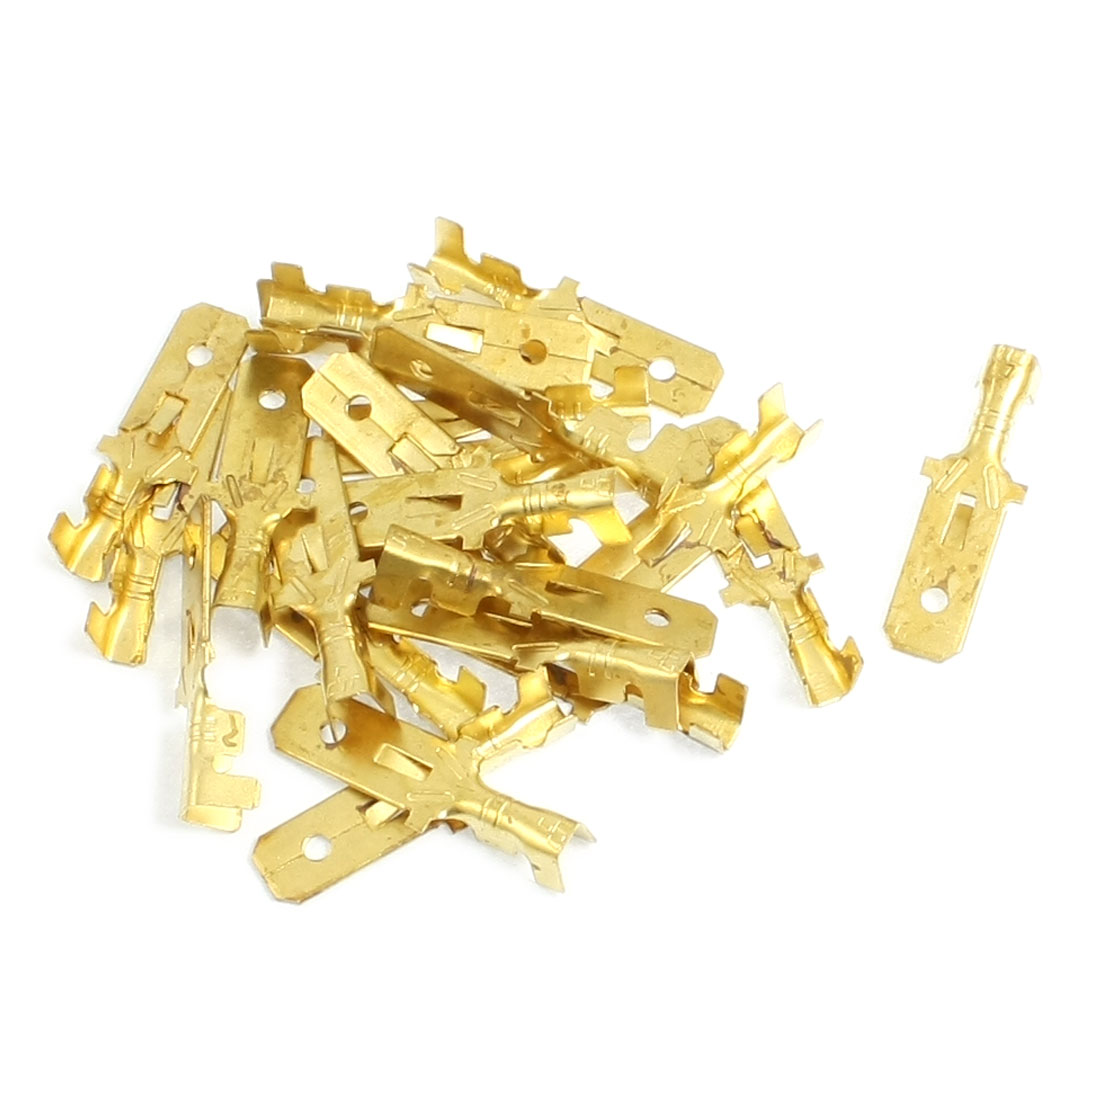 20 Pcs 7.6mm Width Wire Brass Male Spade Terminal Connectors